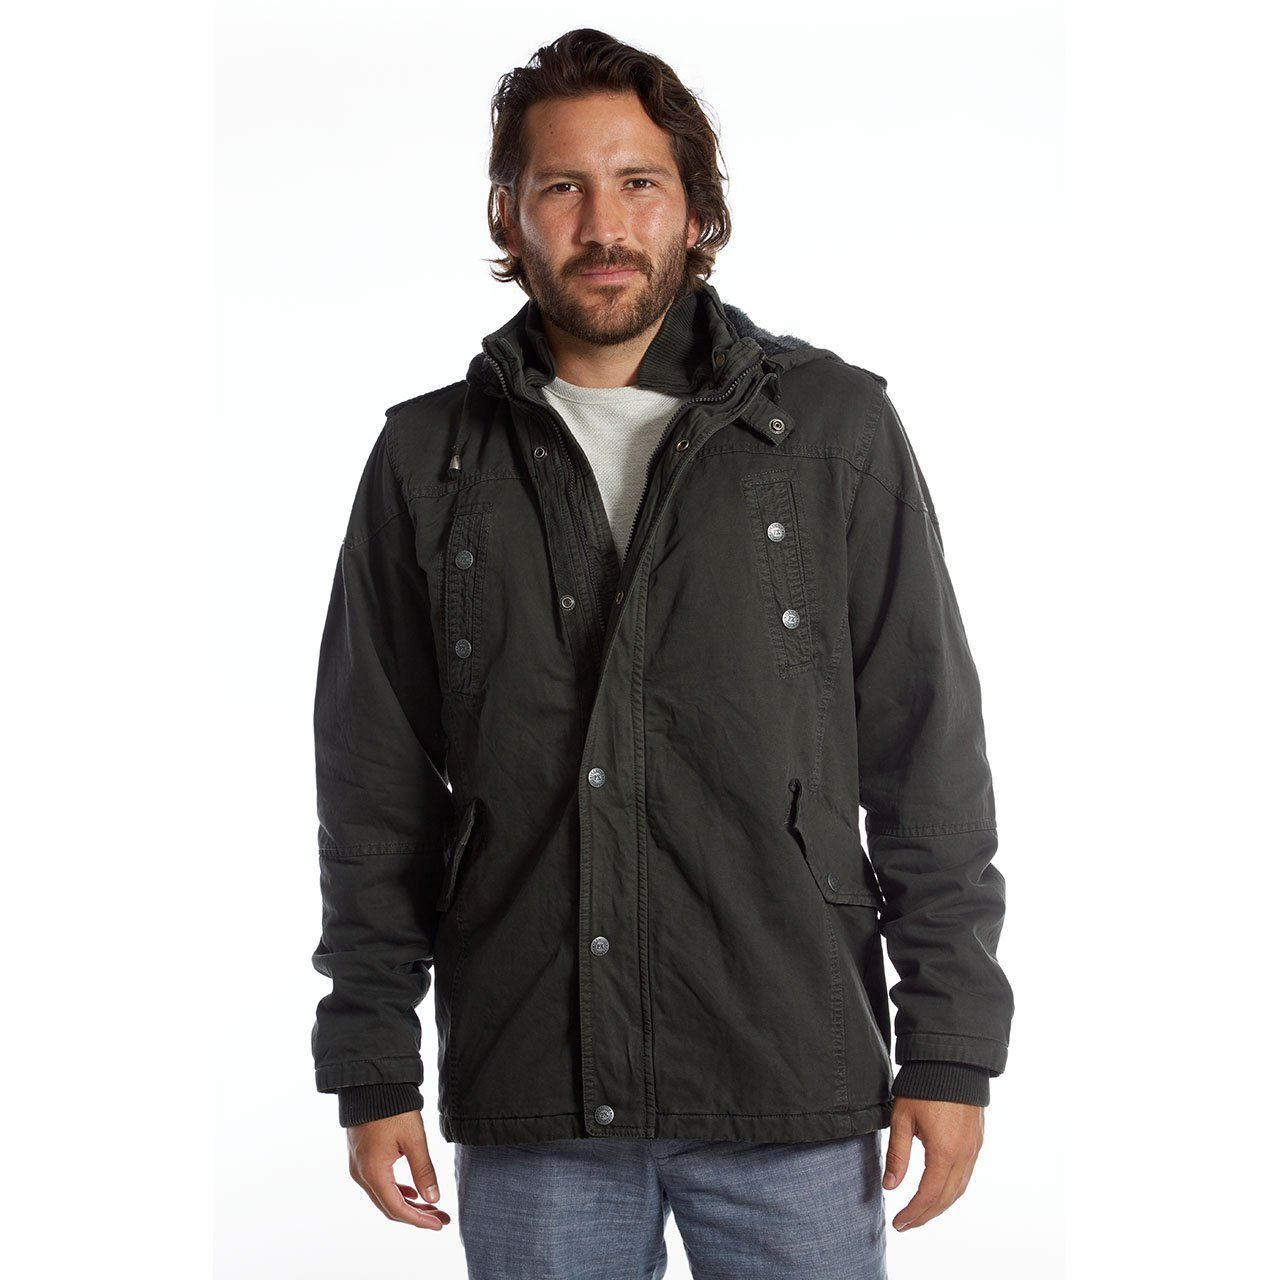 Cotton Jackets - Zach Long Cotton Jacket